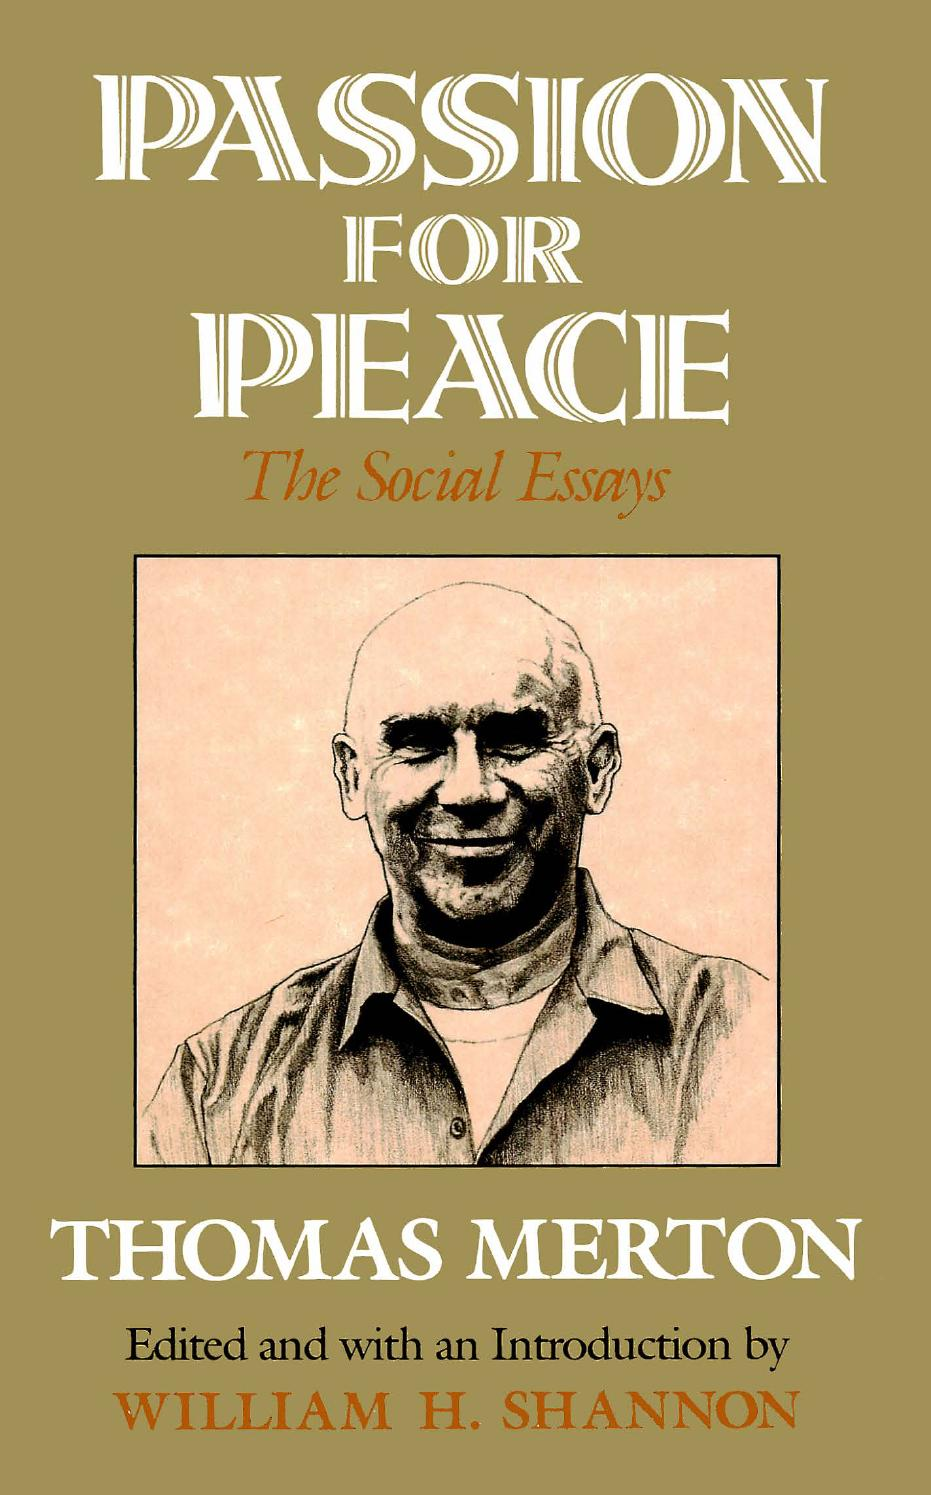 passion for peace the social essays by thomas merton ed william passion for peace the social essays by thomas merton ed william h shannon by samzdat